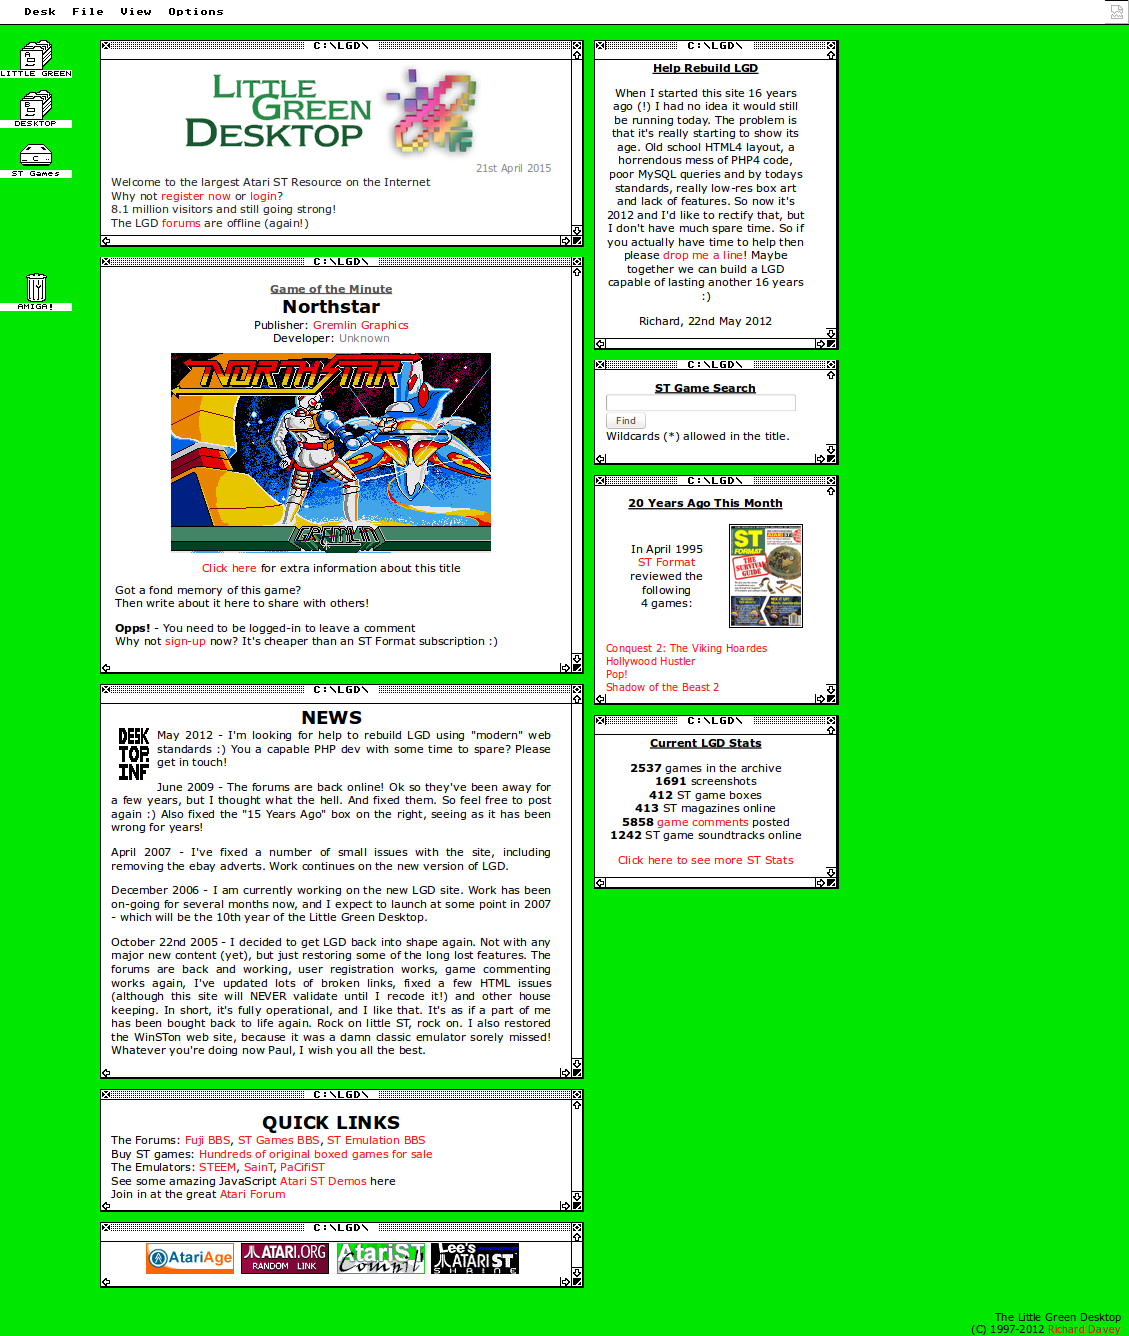 Screenshot of website The Little Green Desktop